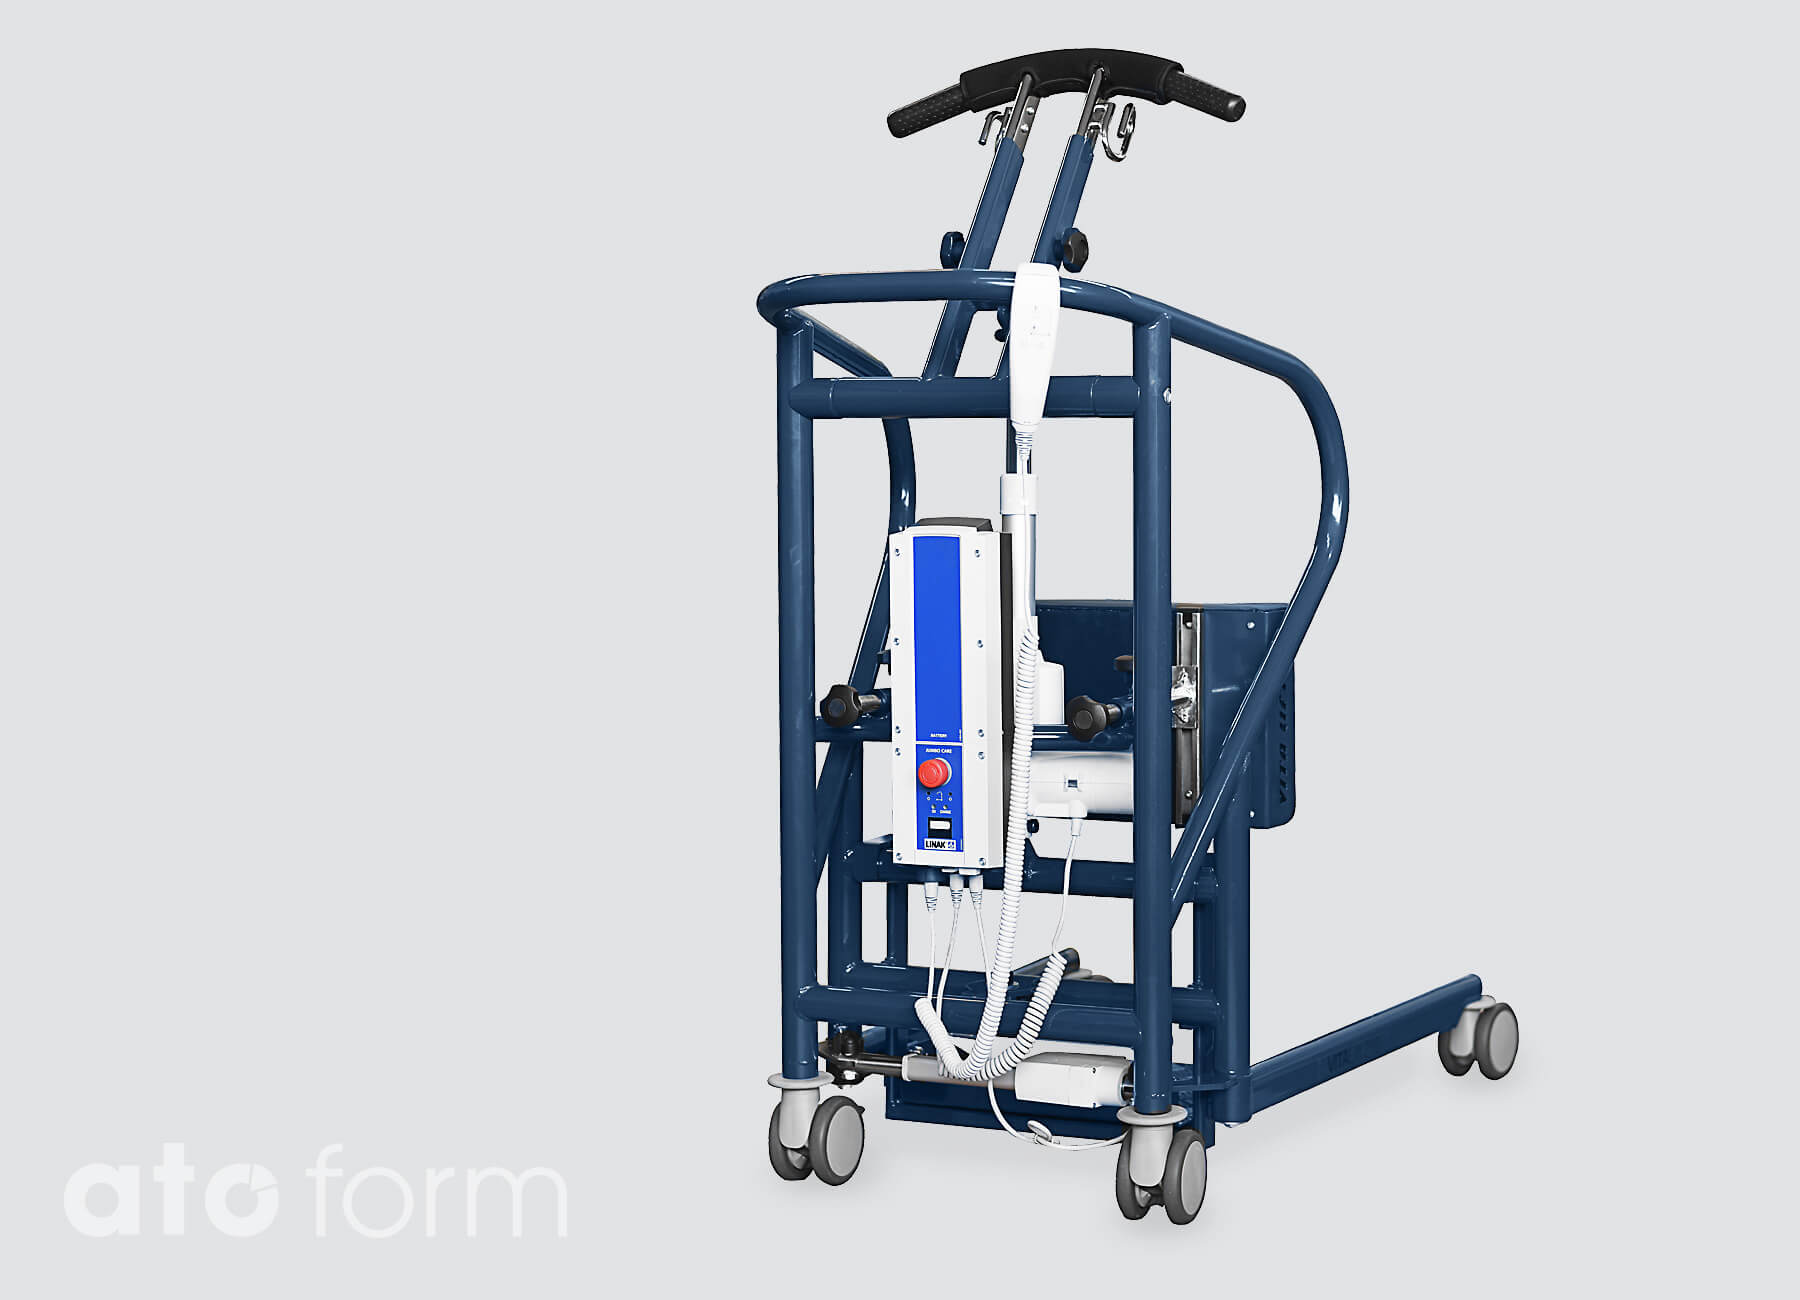 Stand-up and transfer aid Vita-Lift®210